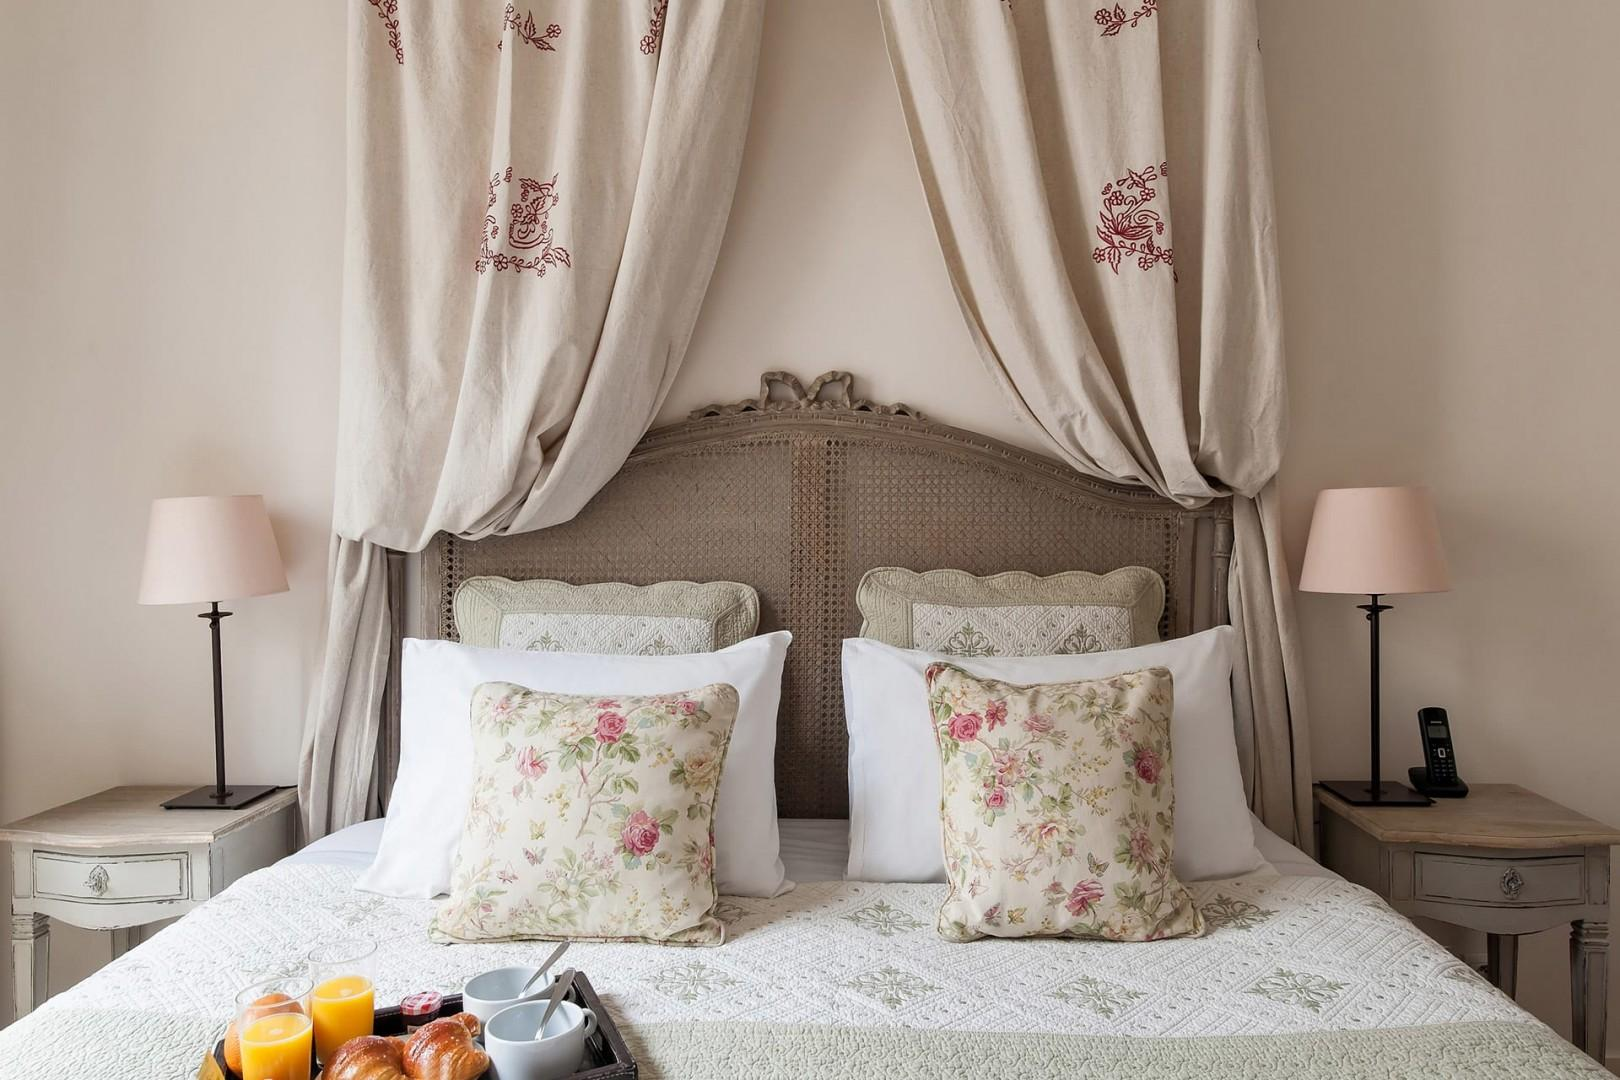 Enjoy reading in the comfortable bed with two bedside lamps.